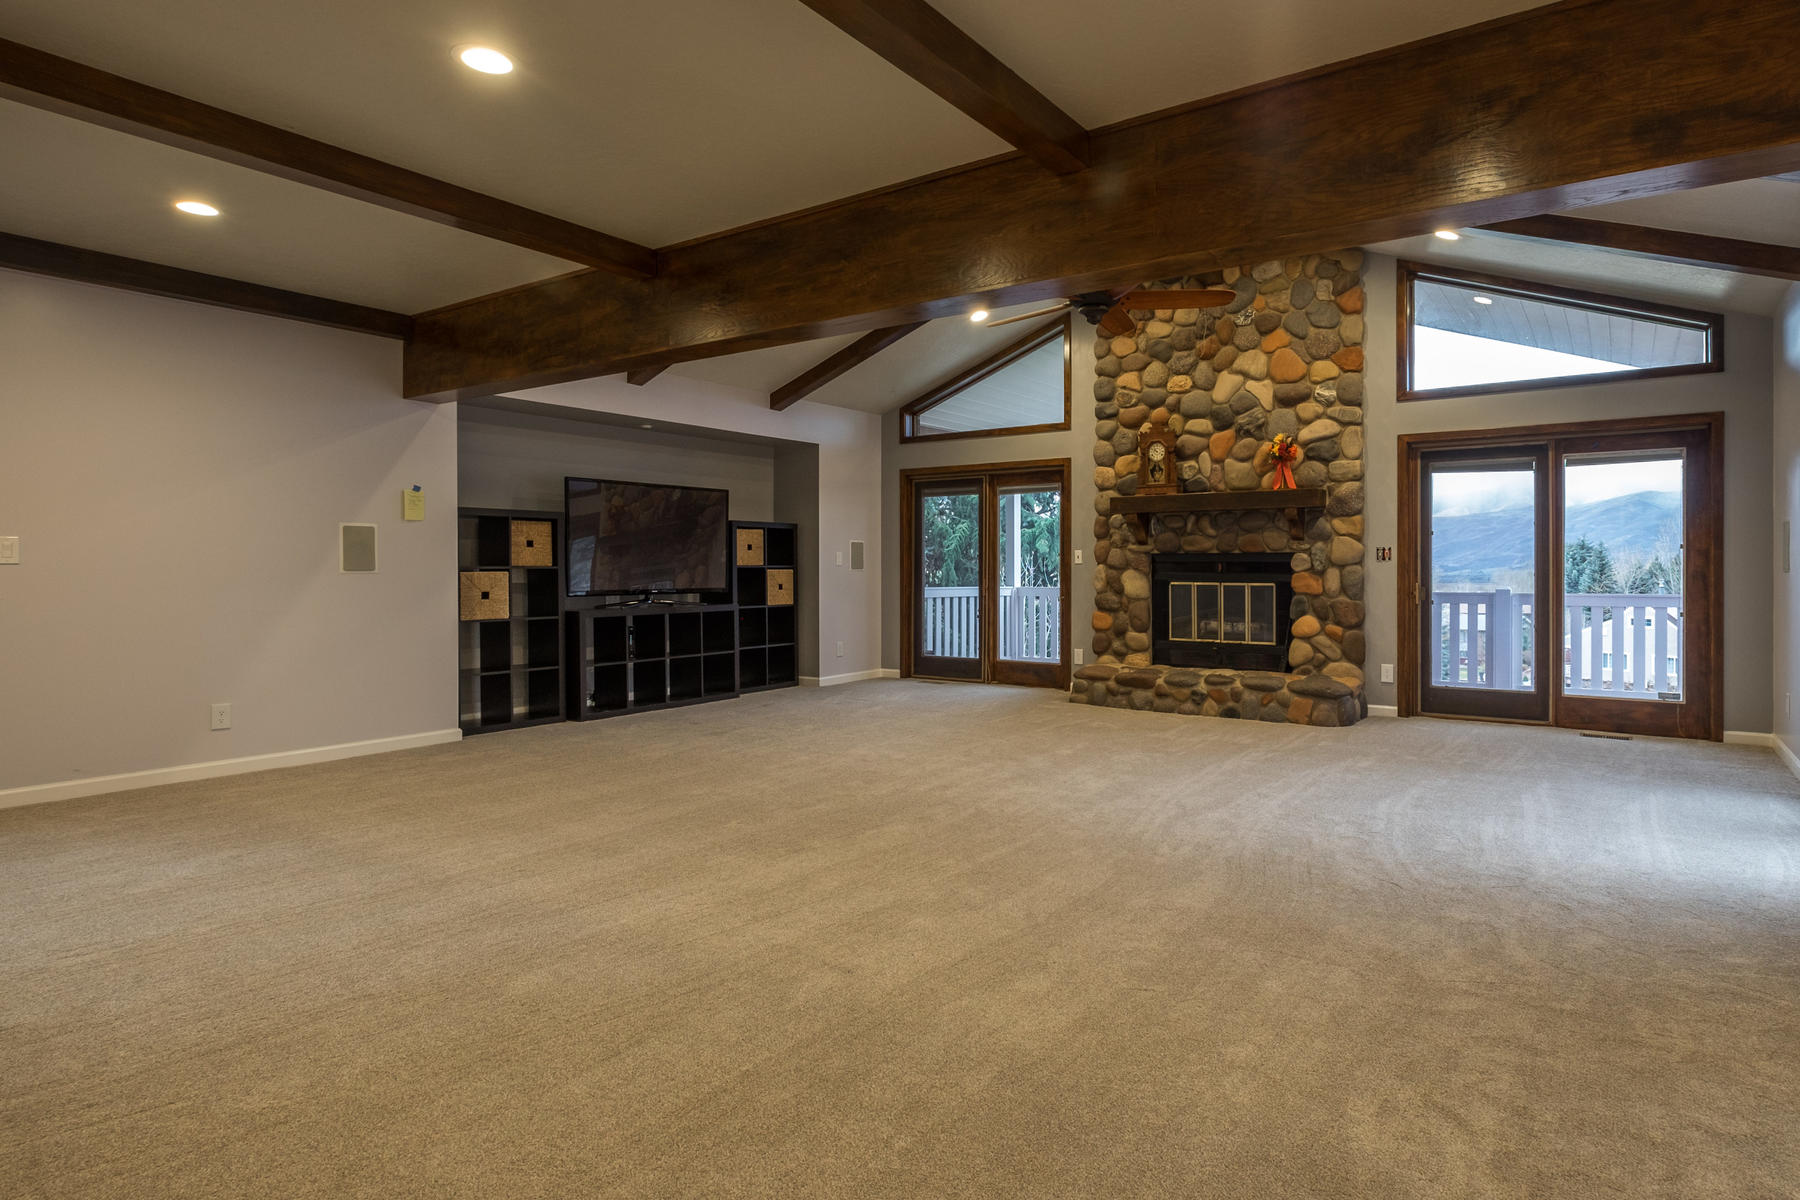 Additional photo for property listing at Golden Opportunity! 1075 N Valley Dr Heber City, Utah 84032 United States